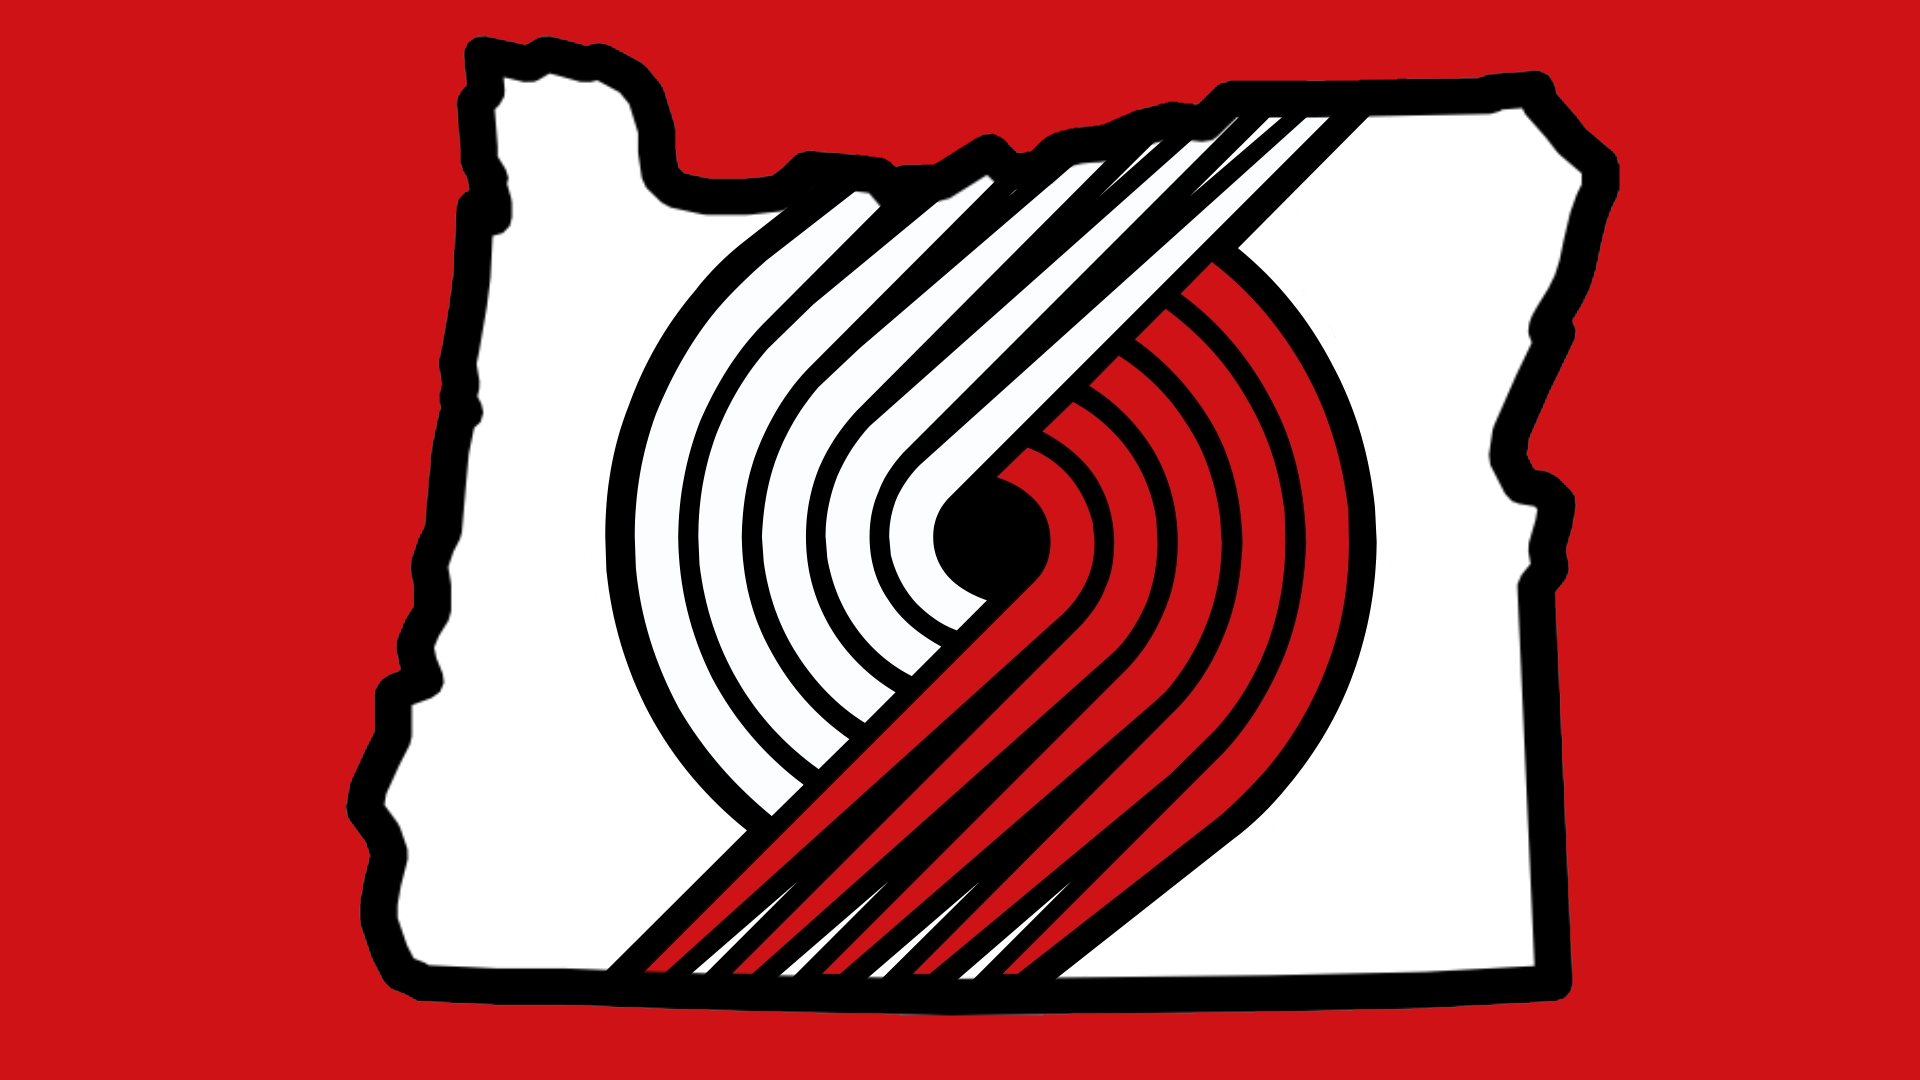 Rip City Wallpaper Wallpapersafari